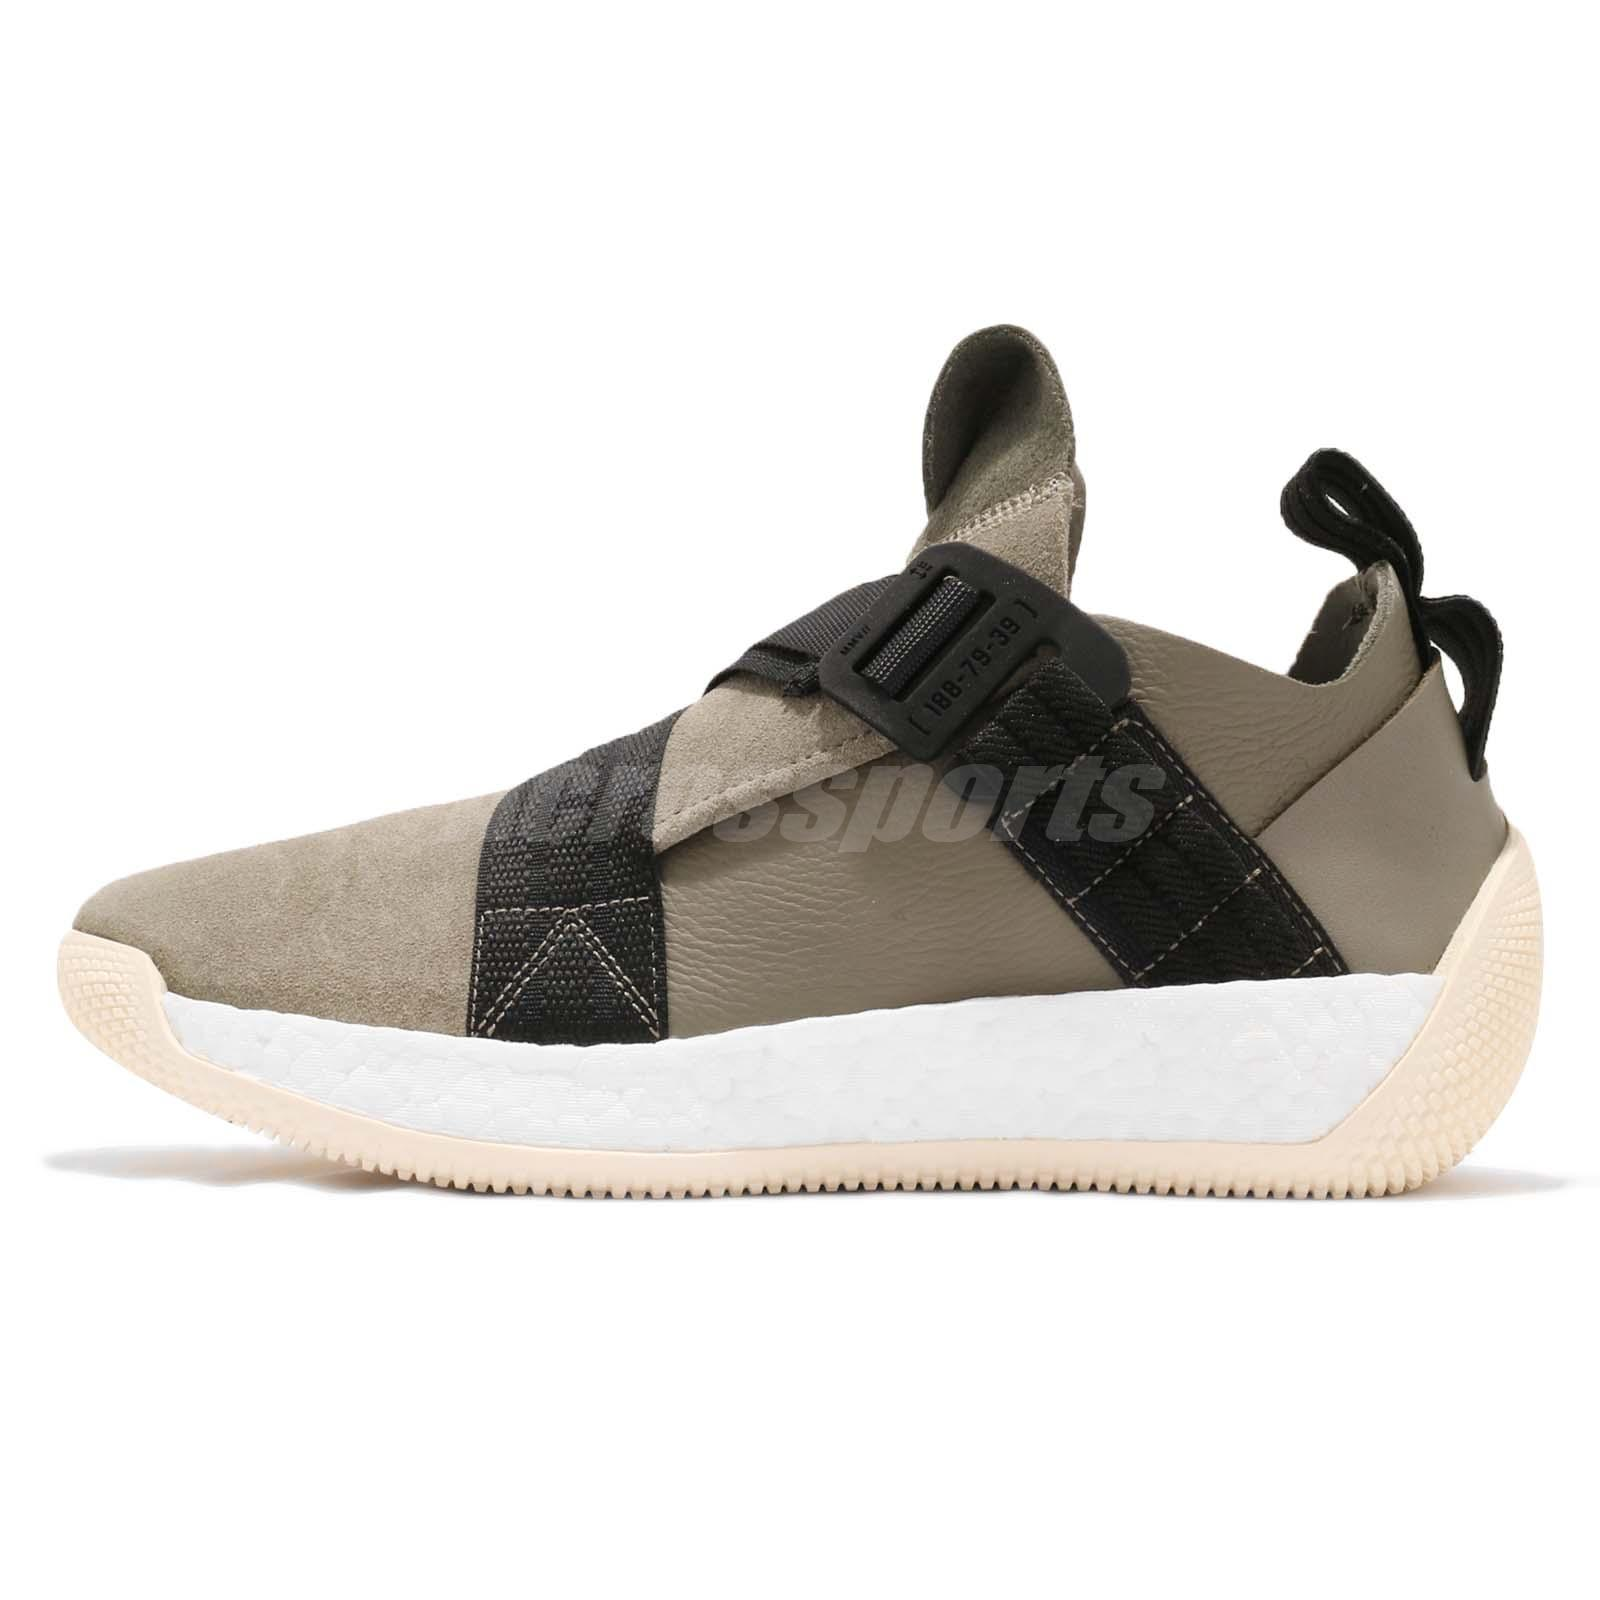 212cb1809895 Core Black Cloud White Gold Metallic BB7651 . Another Chance adidas Harden  LS 2 Buckle Olive James Boost Trace Cargo Men Lifestye Shoe AQ0020 .